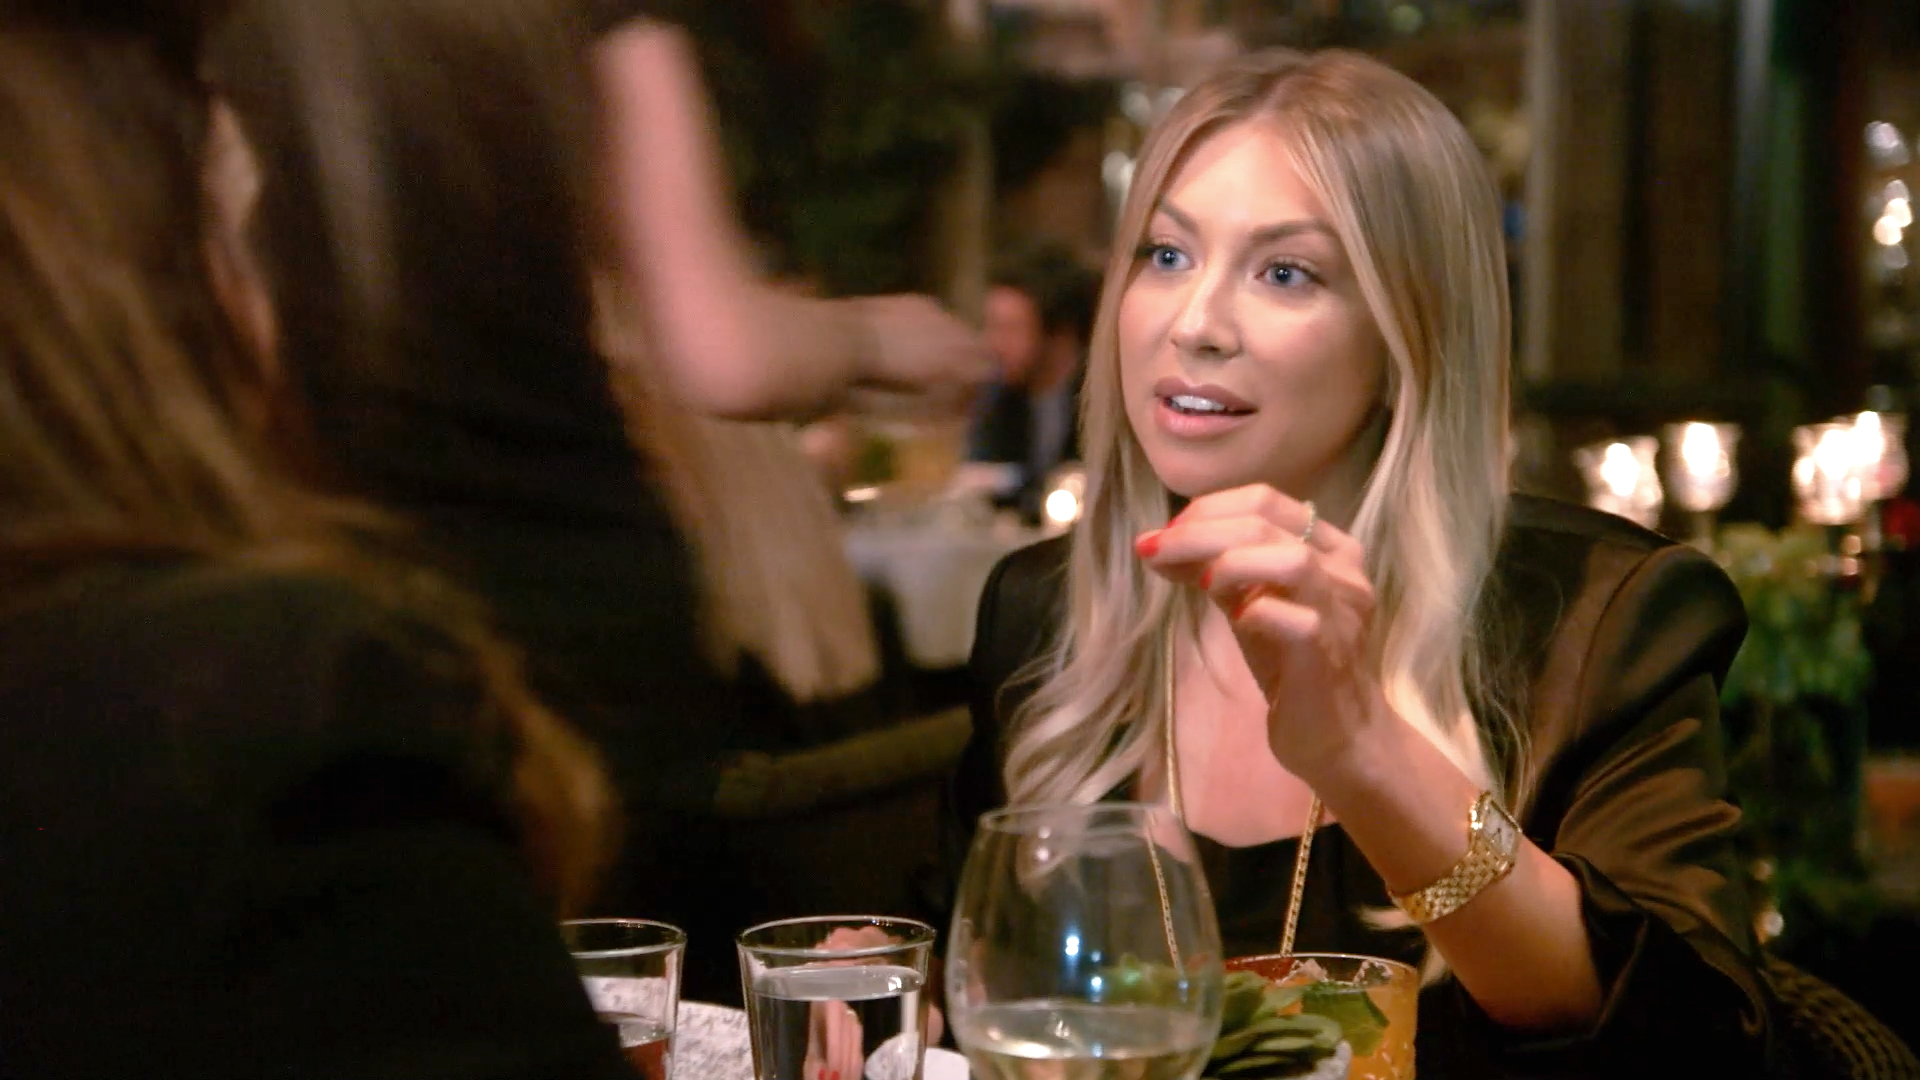 191226 4090190 Is Stassi Schroeder Done With Kristen Doute